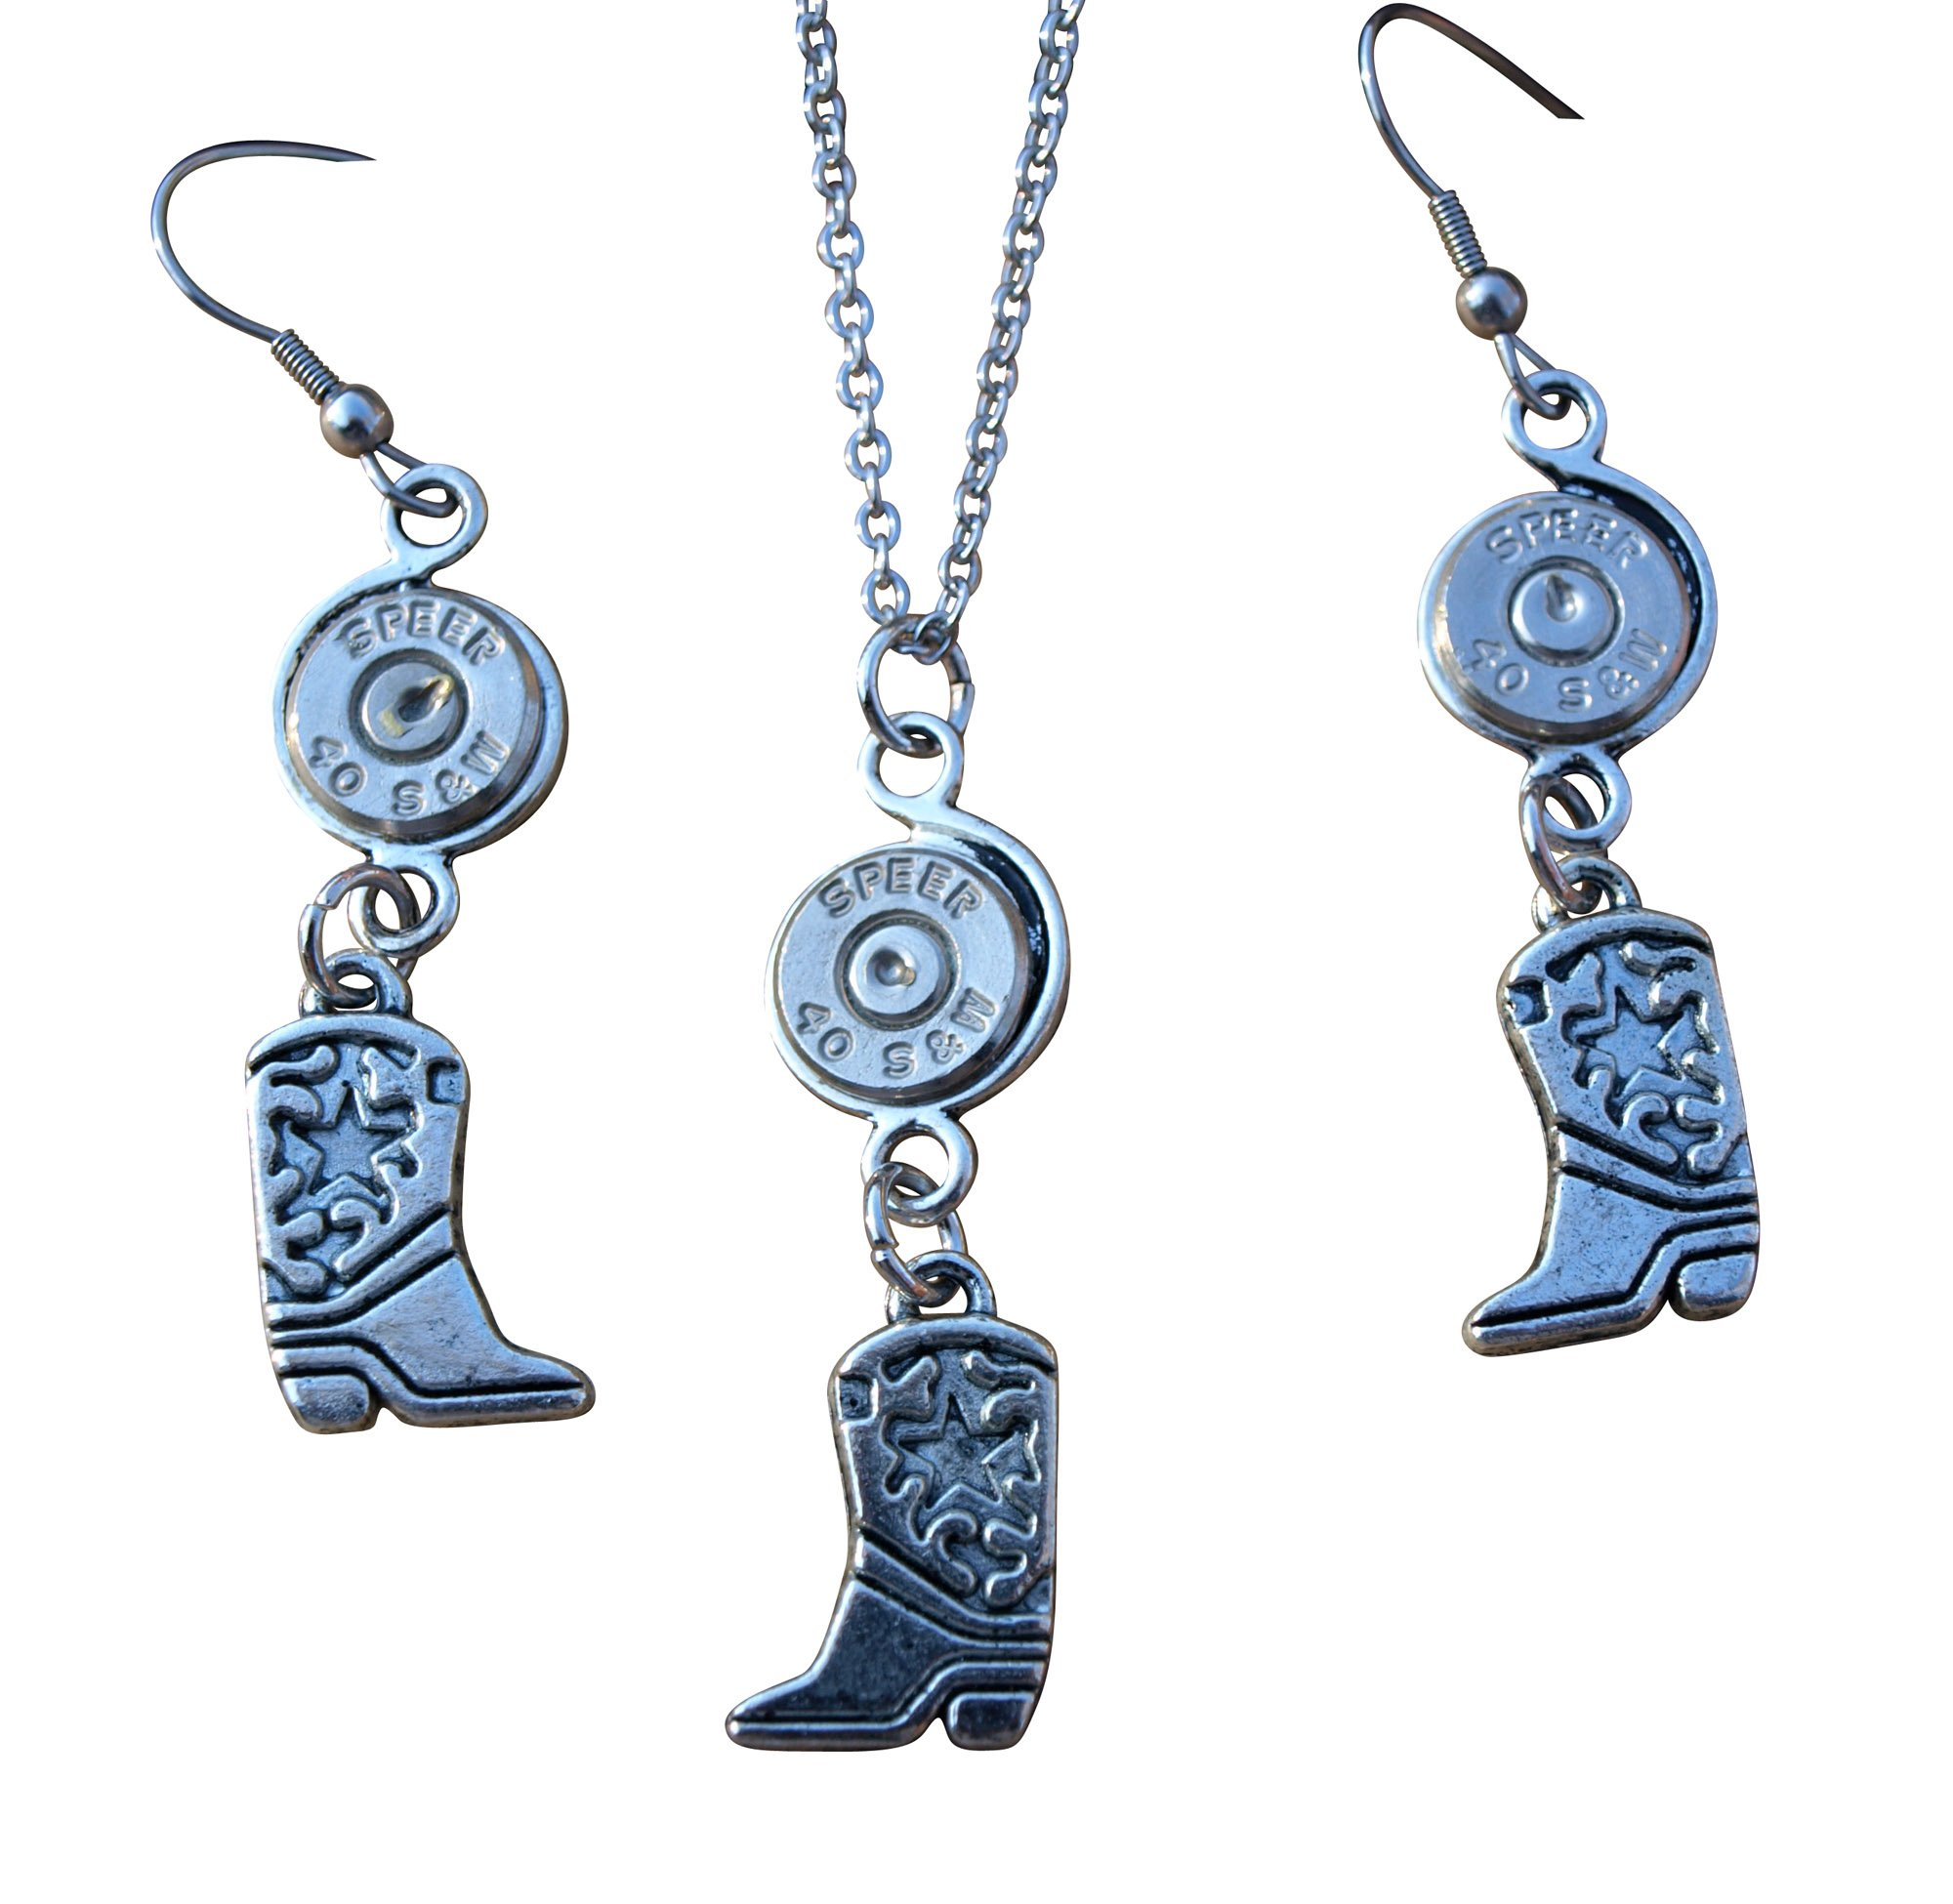 Handmade Bullet Necklace and Earring Set. Boot Charms and Nickel 40 Bullets. Optional crystals. S605